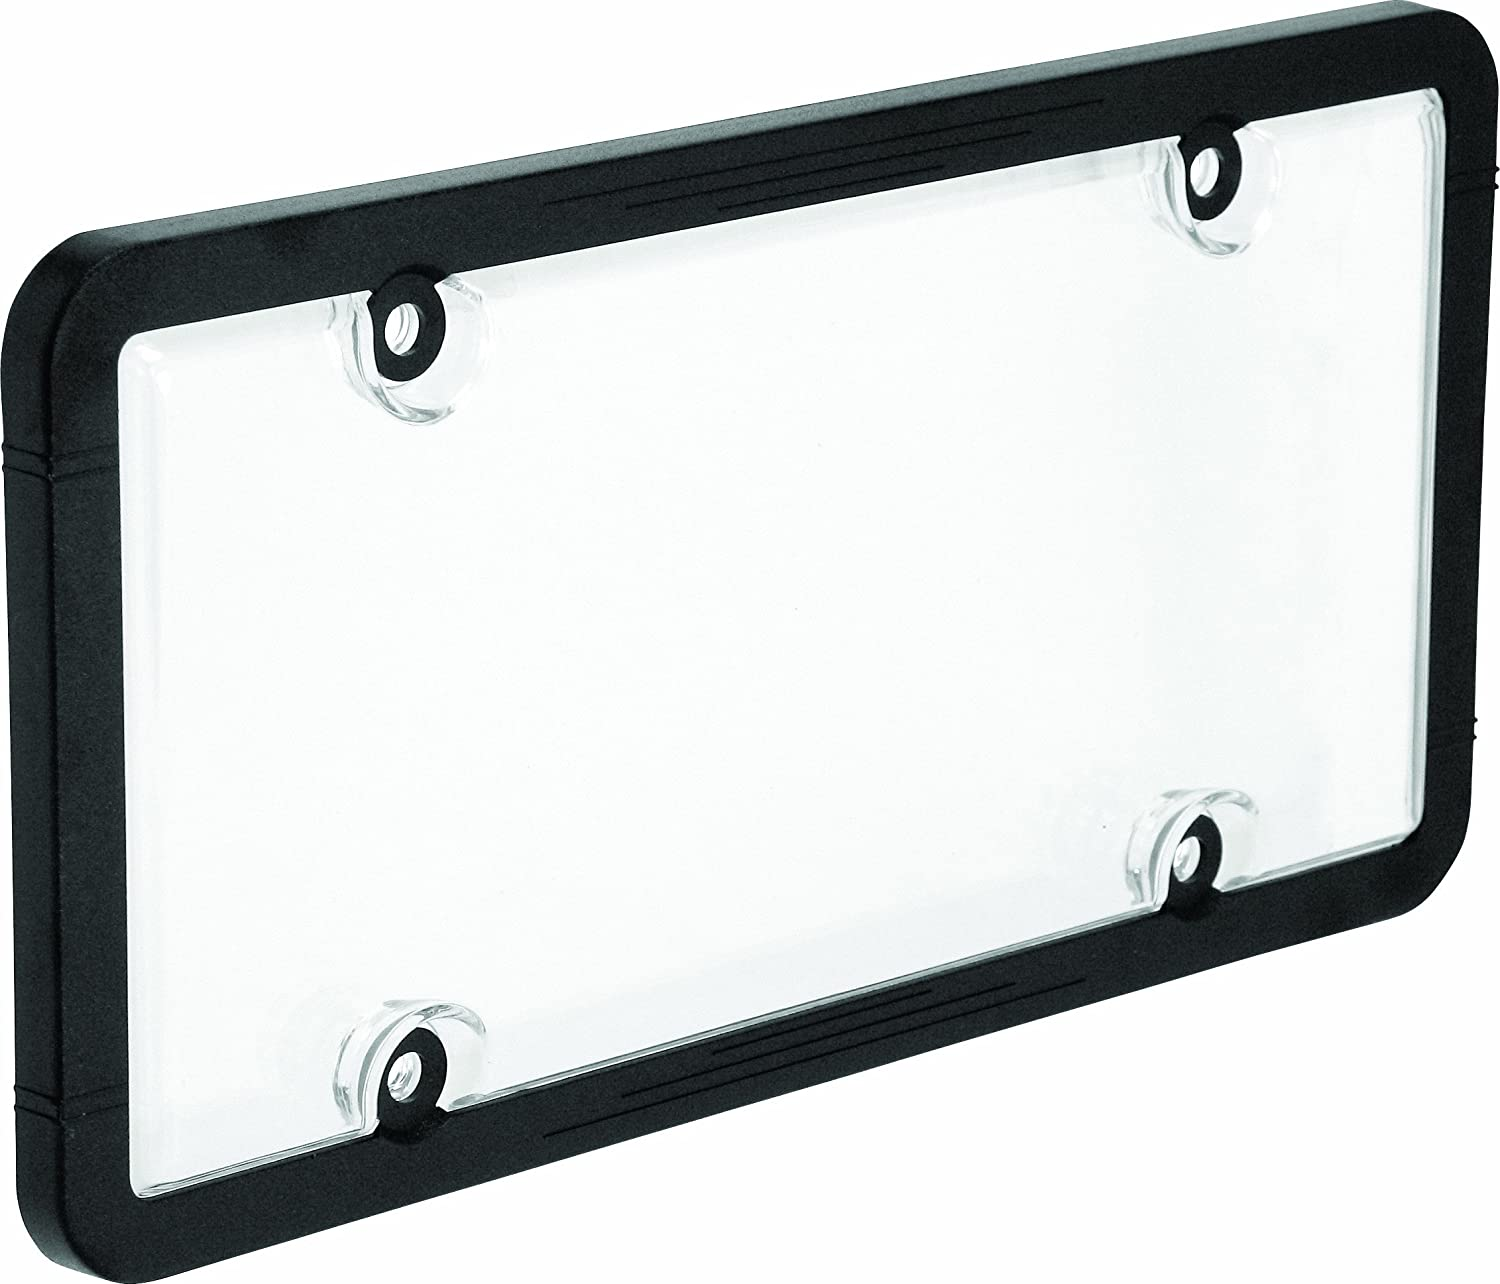 amazoncom bell automotive 22 1 45601 8 universal license plate frame with clear cover black automotive